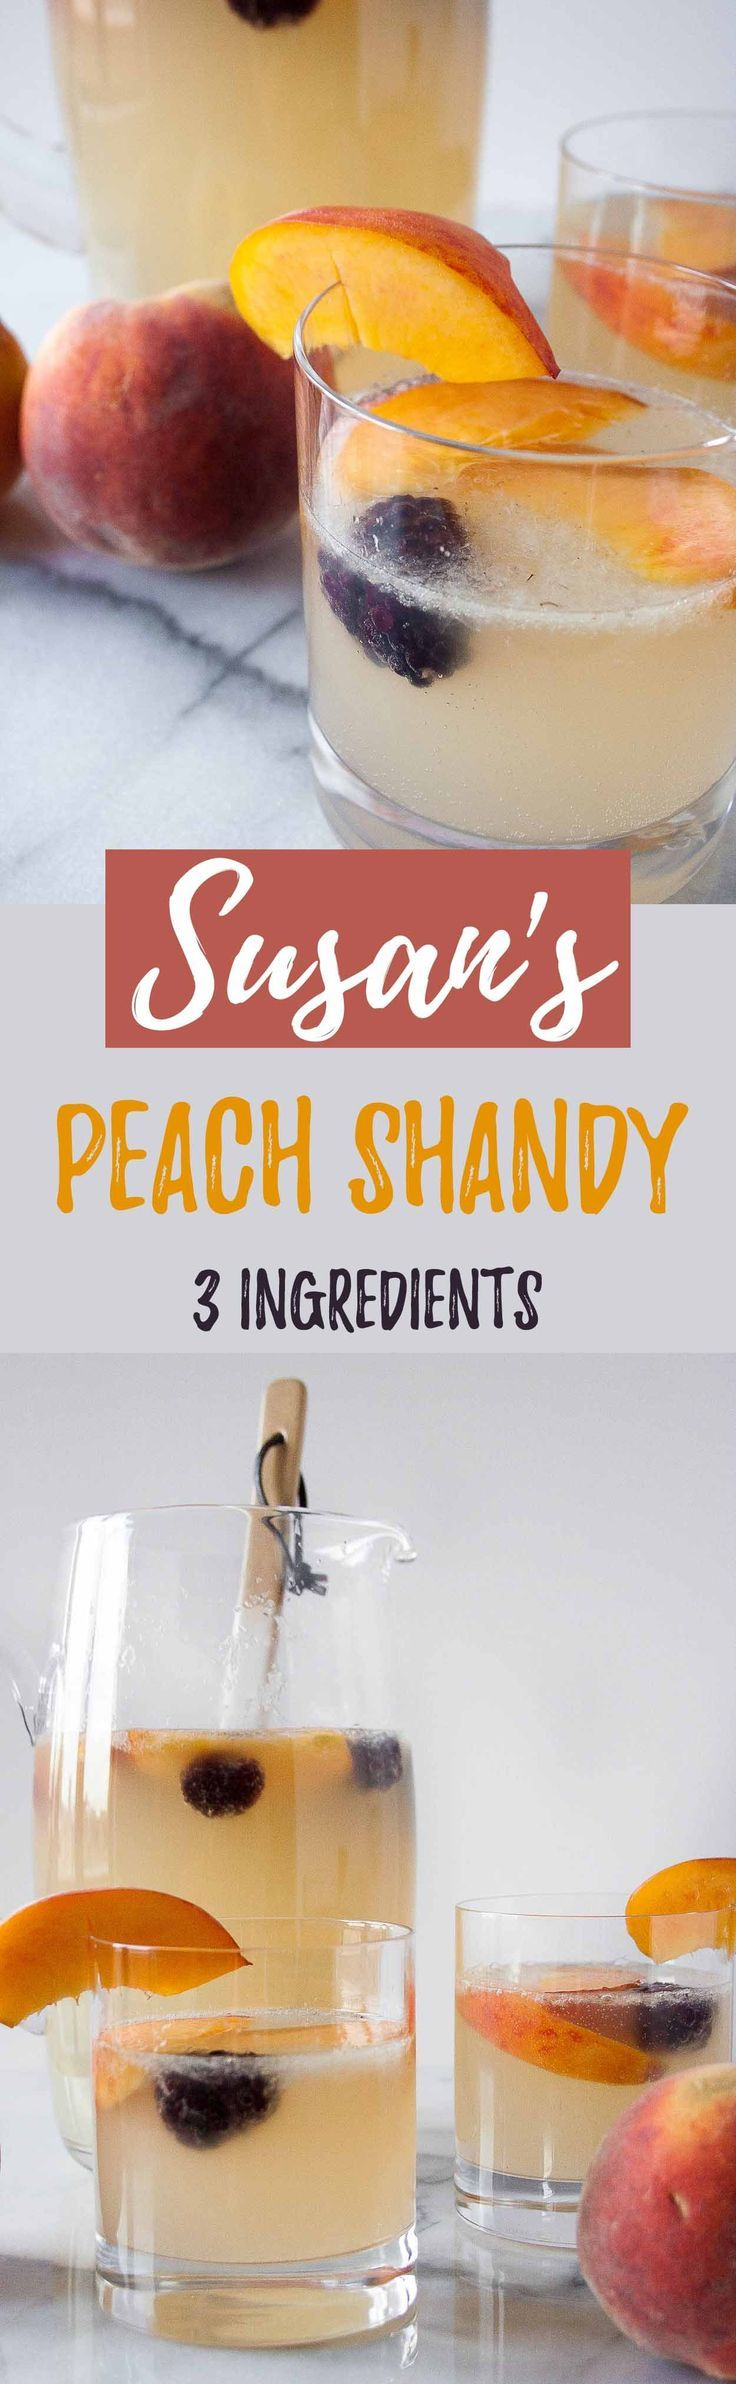 Susan's Peach Shandy | KOVAL Distillery, Susan for President, Peach Brandy, peach punch recipe, party, cocktail recipe, ginger beer, lemonade, shandy punch | hungrybynature.com